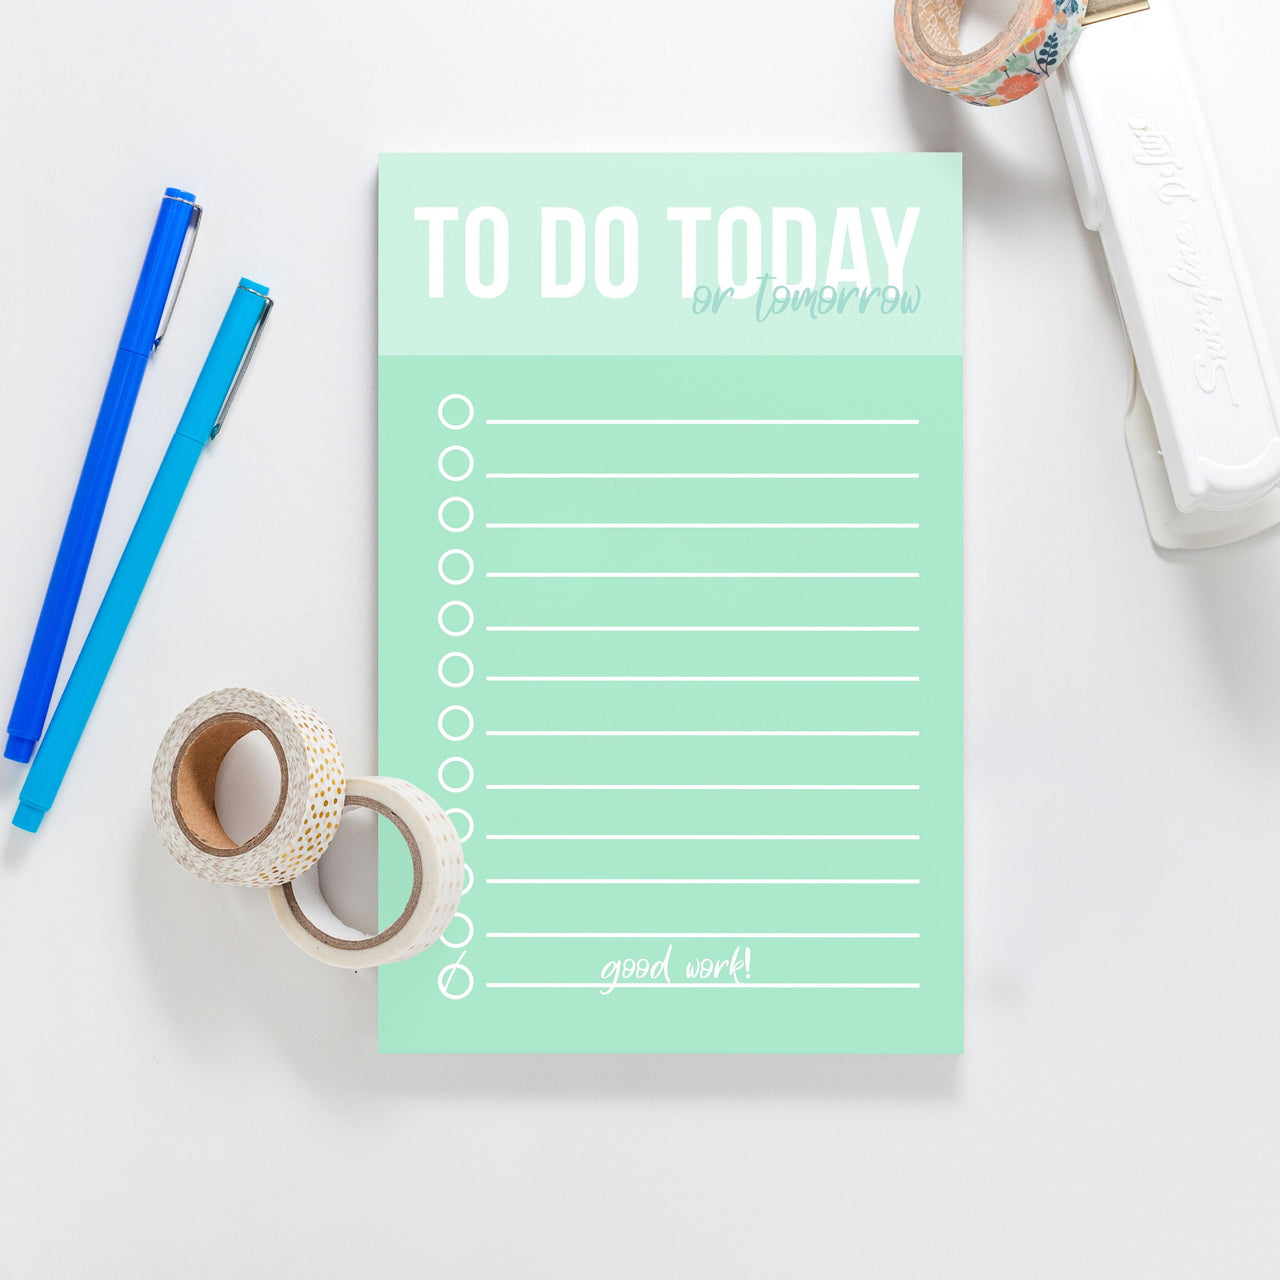 To Do Today Notepad, Color block notepad, Listing notepad, Custom Notepad, Mint green notepad - Joy Creative Shop